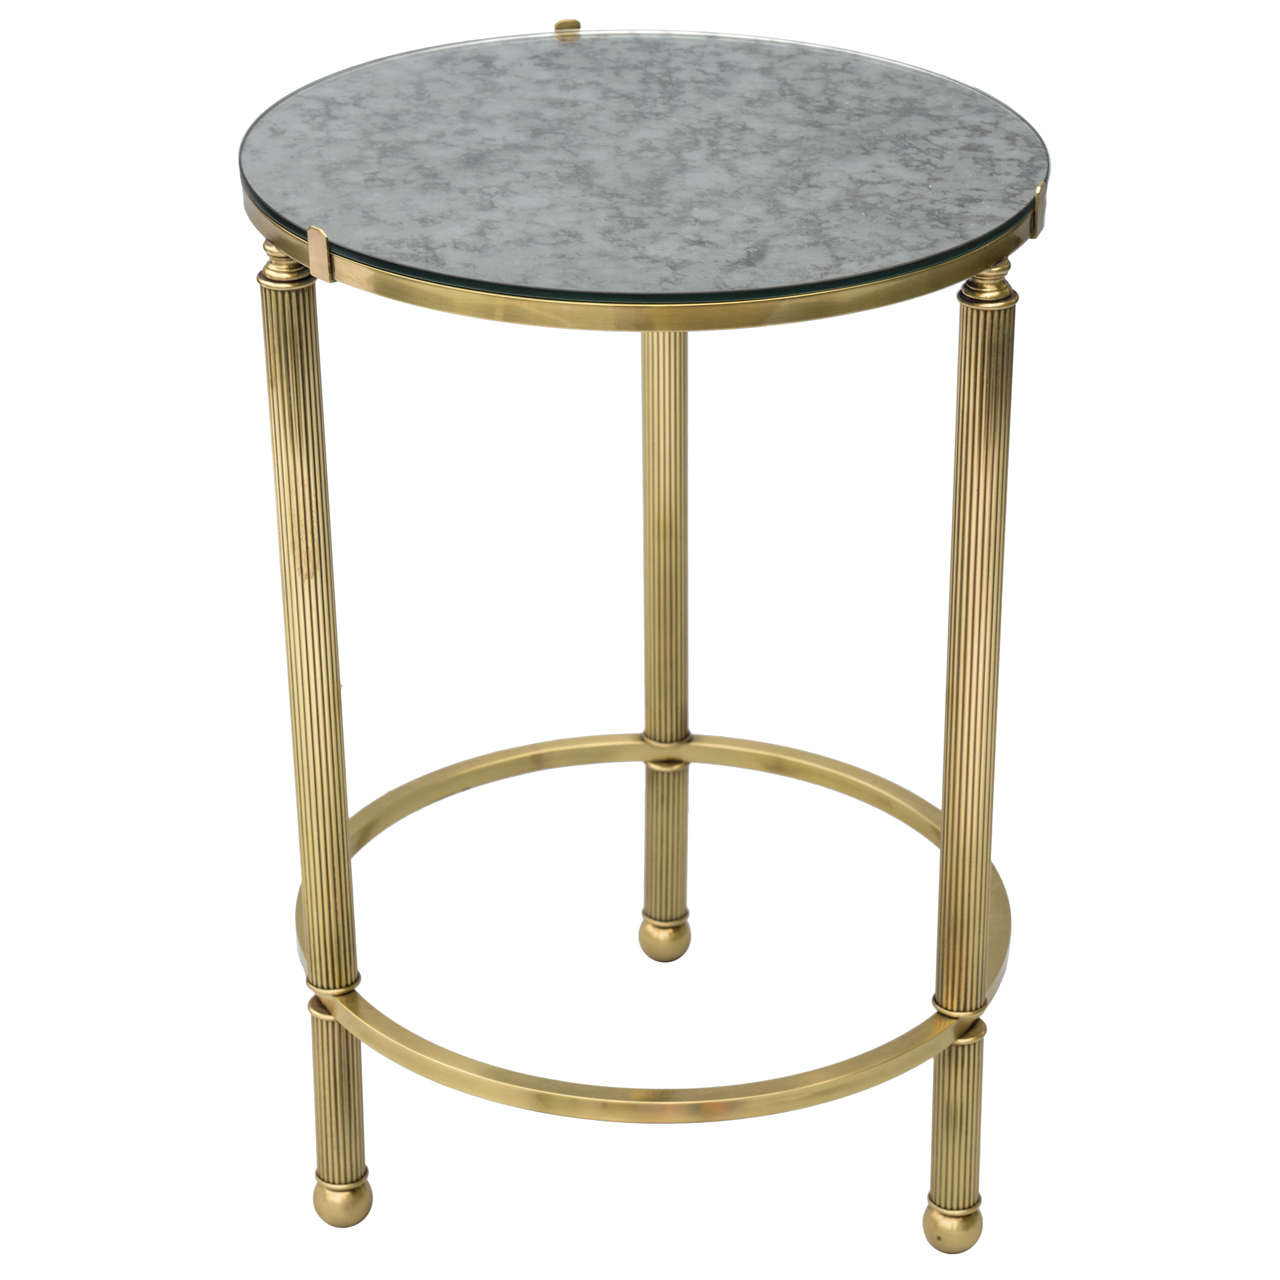 round brass accent table with mirrored top inch high west elm duck lamp target chairs outdoor patio seating walnut nest tables dining home goods kitchen branch yellow desk pier